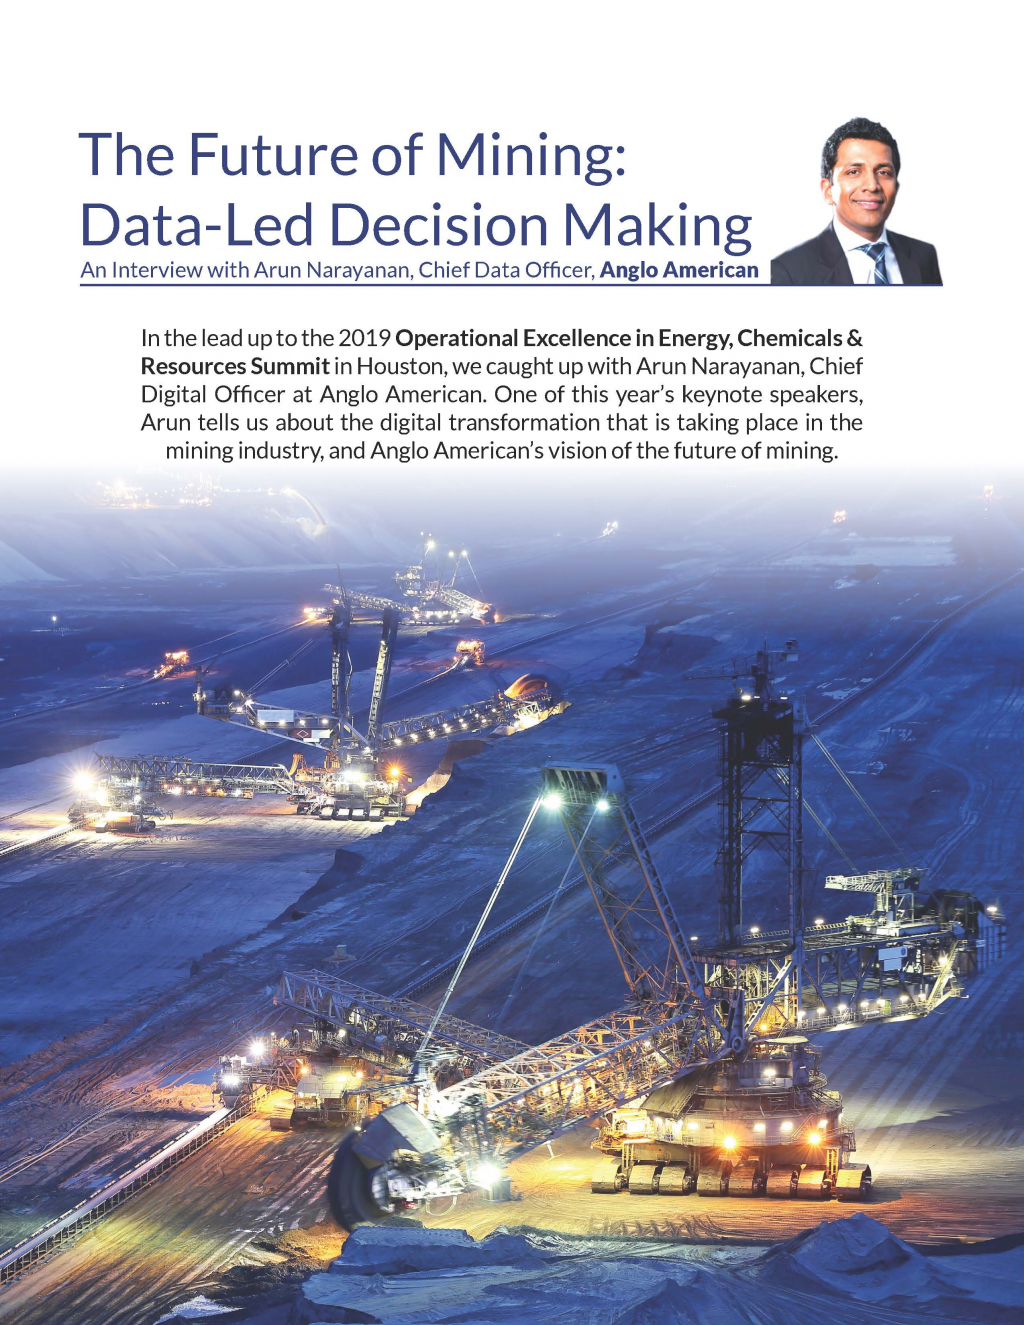 The Future of Mining: Data-Led Decision Making